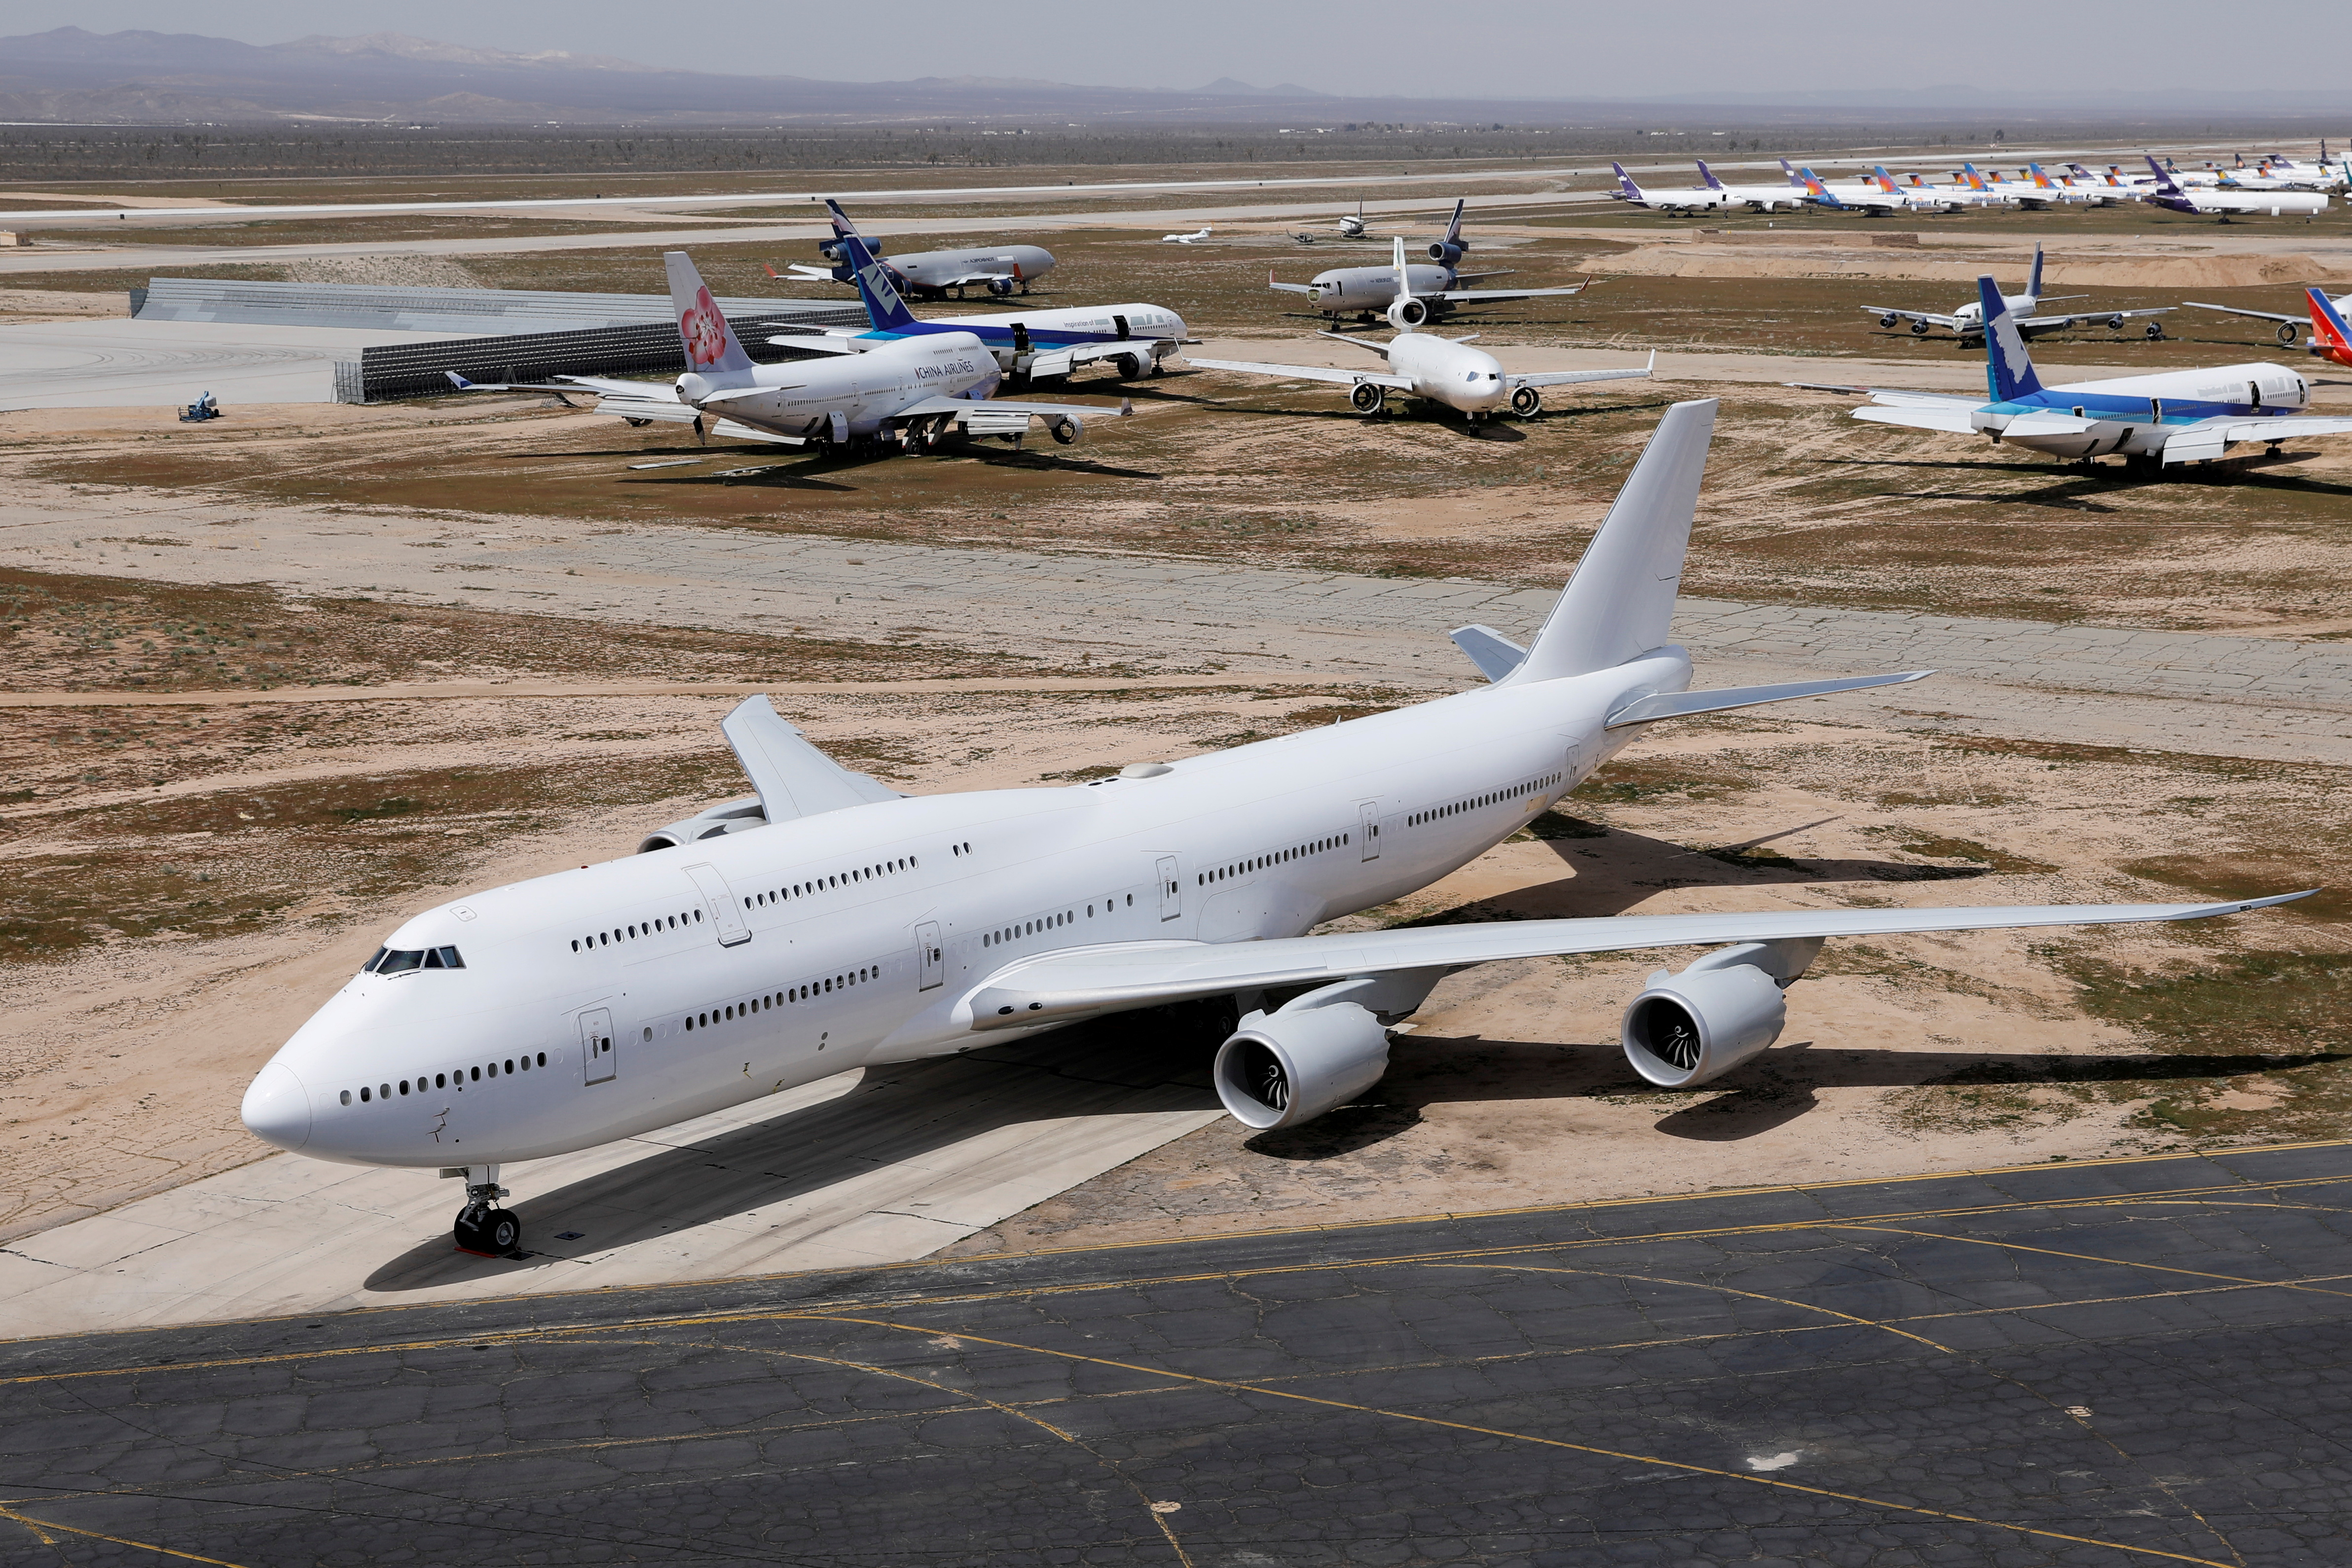 A Boeing 747-8, one of two that had originally been ordered by a now-bankrupt Russian airline and later earmarked for an Air Force One replacement project, is seen parked at Victorville Airport in Victorville, California, U.S., March 26, 2019.  REUTERS/Mike Blake/File Photo